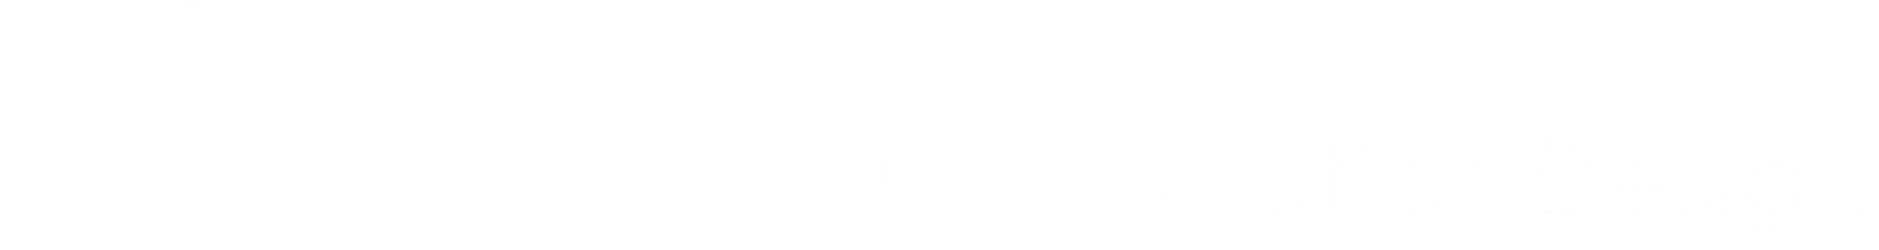 Nautic Evolution Design